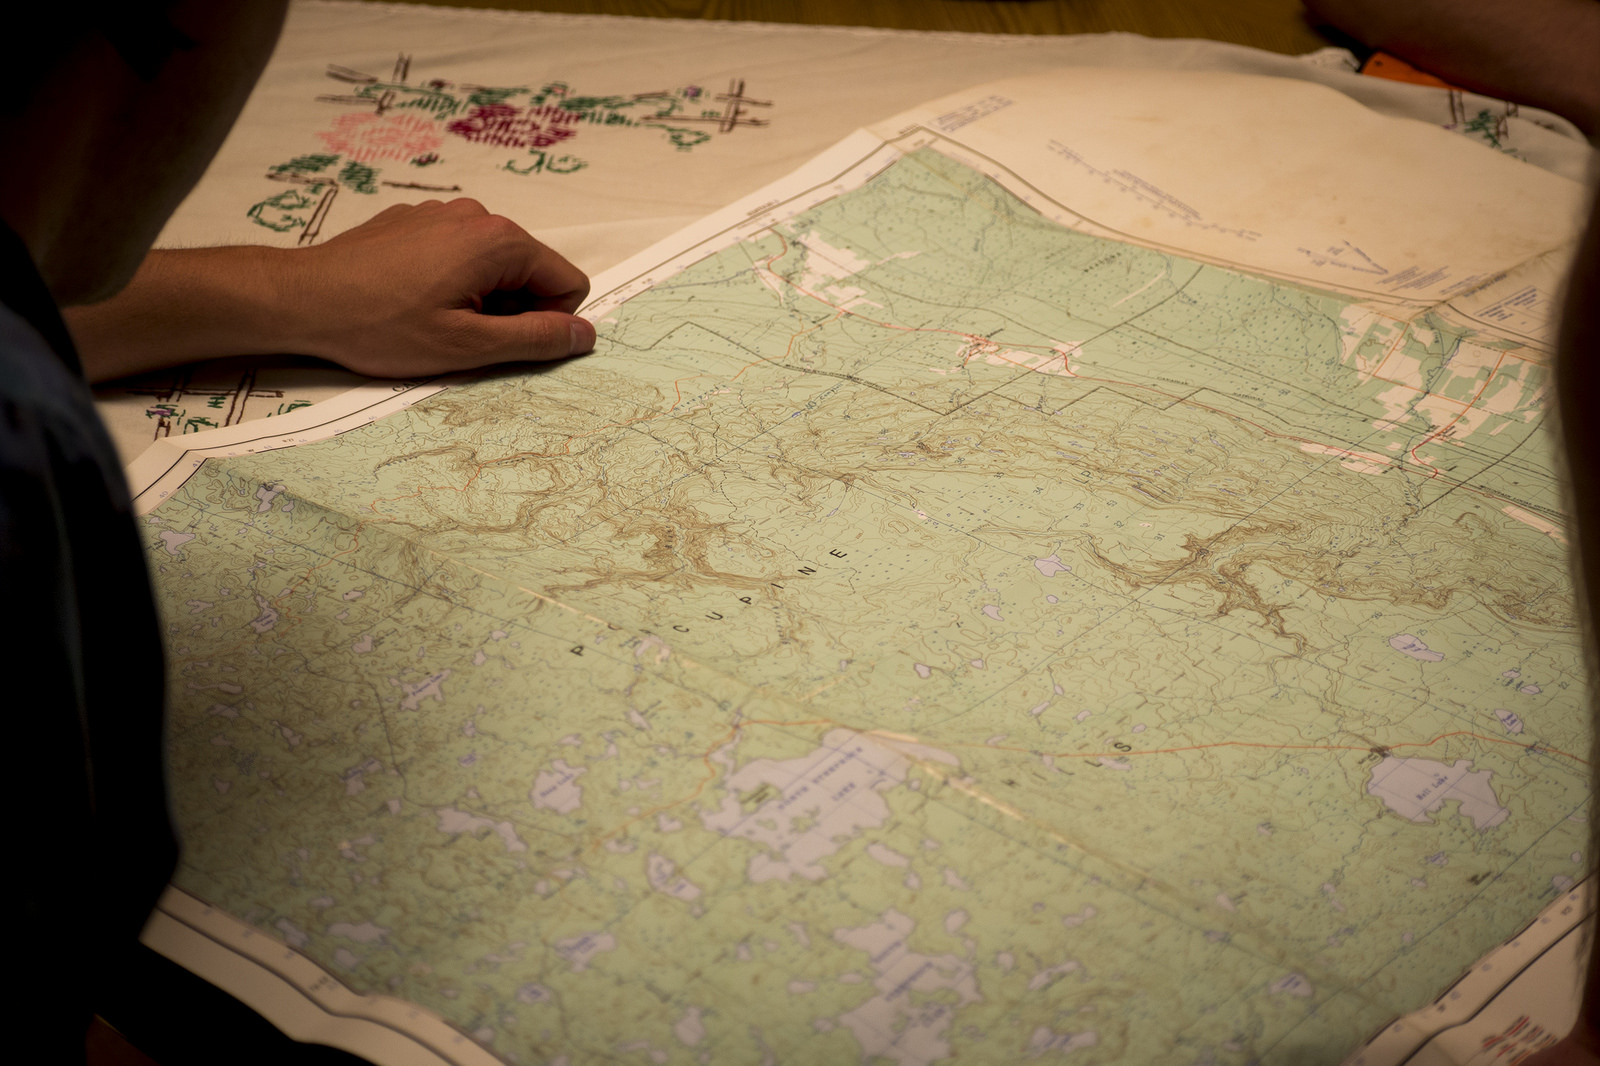 Going over the topographic map on the night before our trip. Snail Lake is located south of both North and South Steeprock Lakes in the Porcupine Hills.